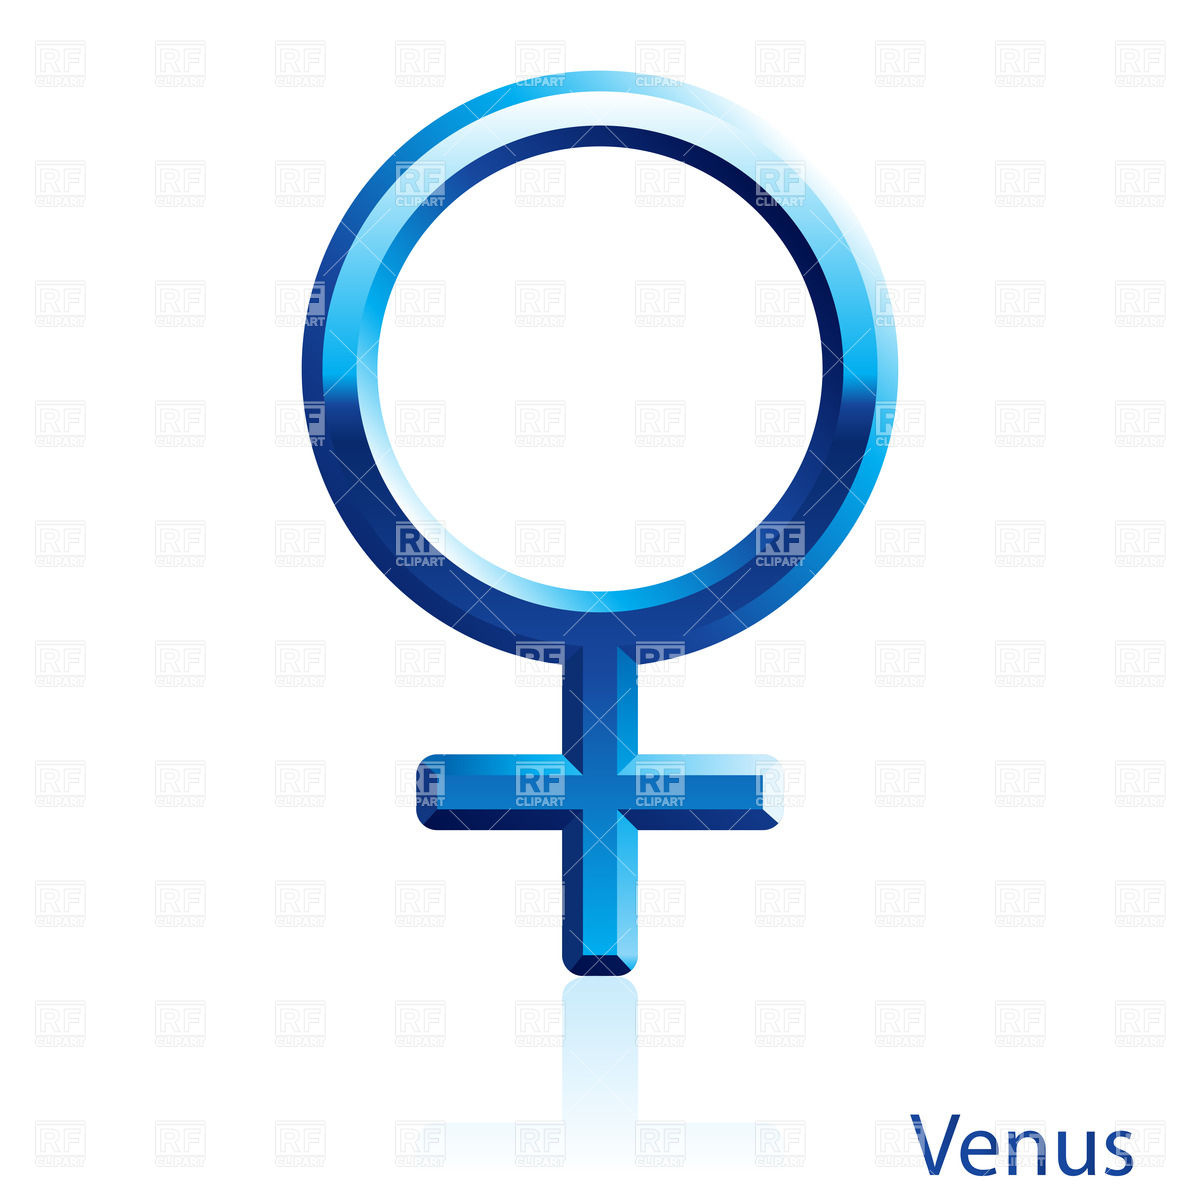 Venus Sign On White Background Download Royalty Free Vector Clipart